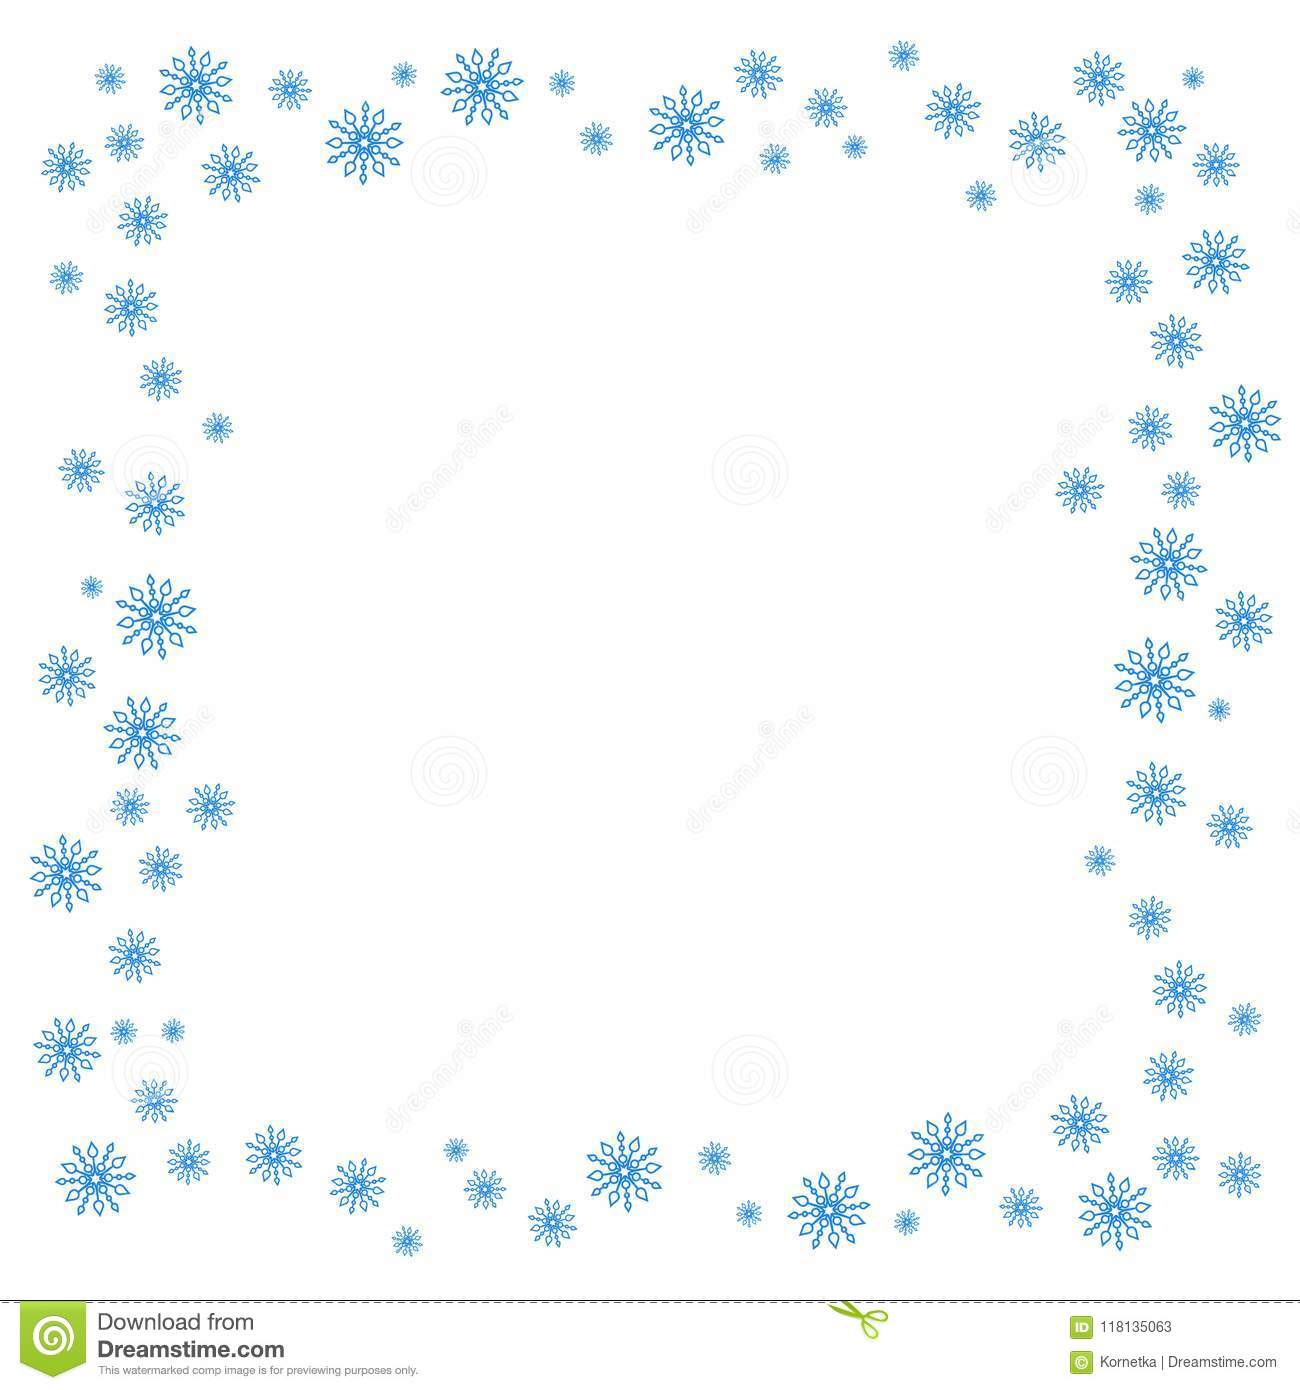 Square Christmas border or frame with random scatter falling snowflakes